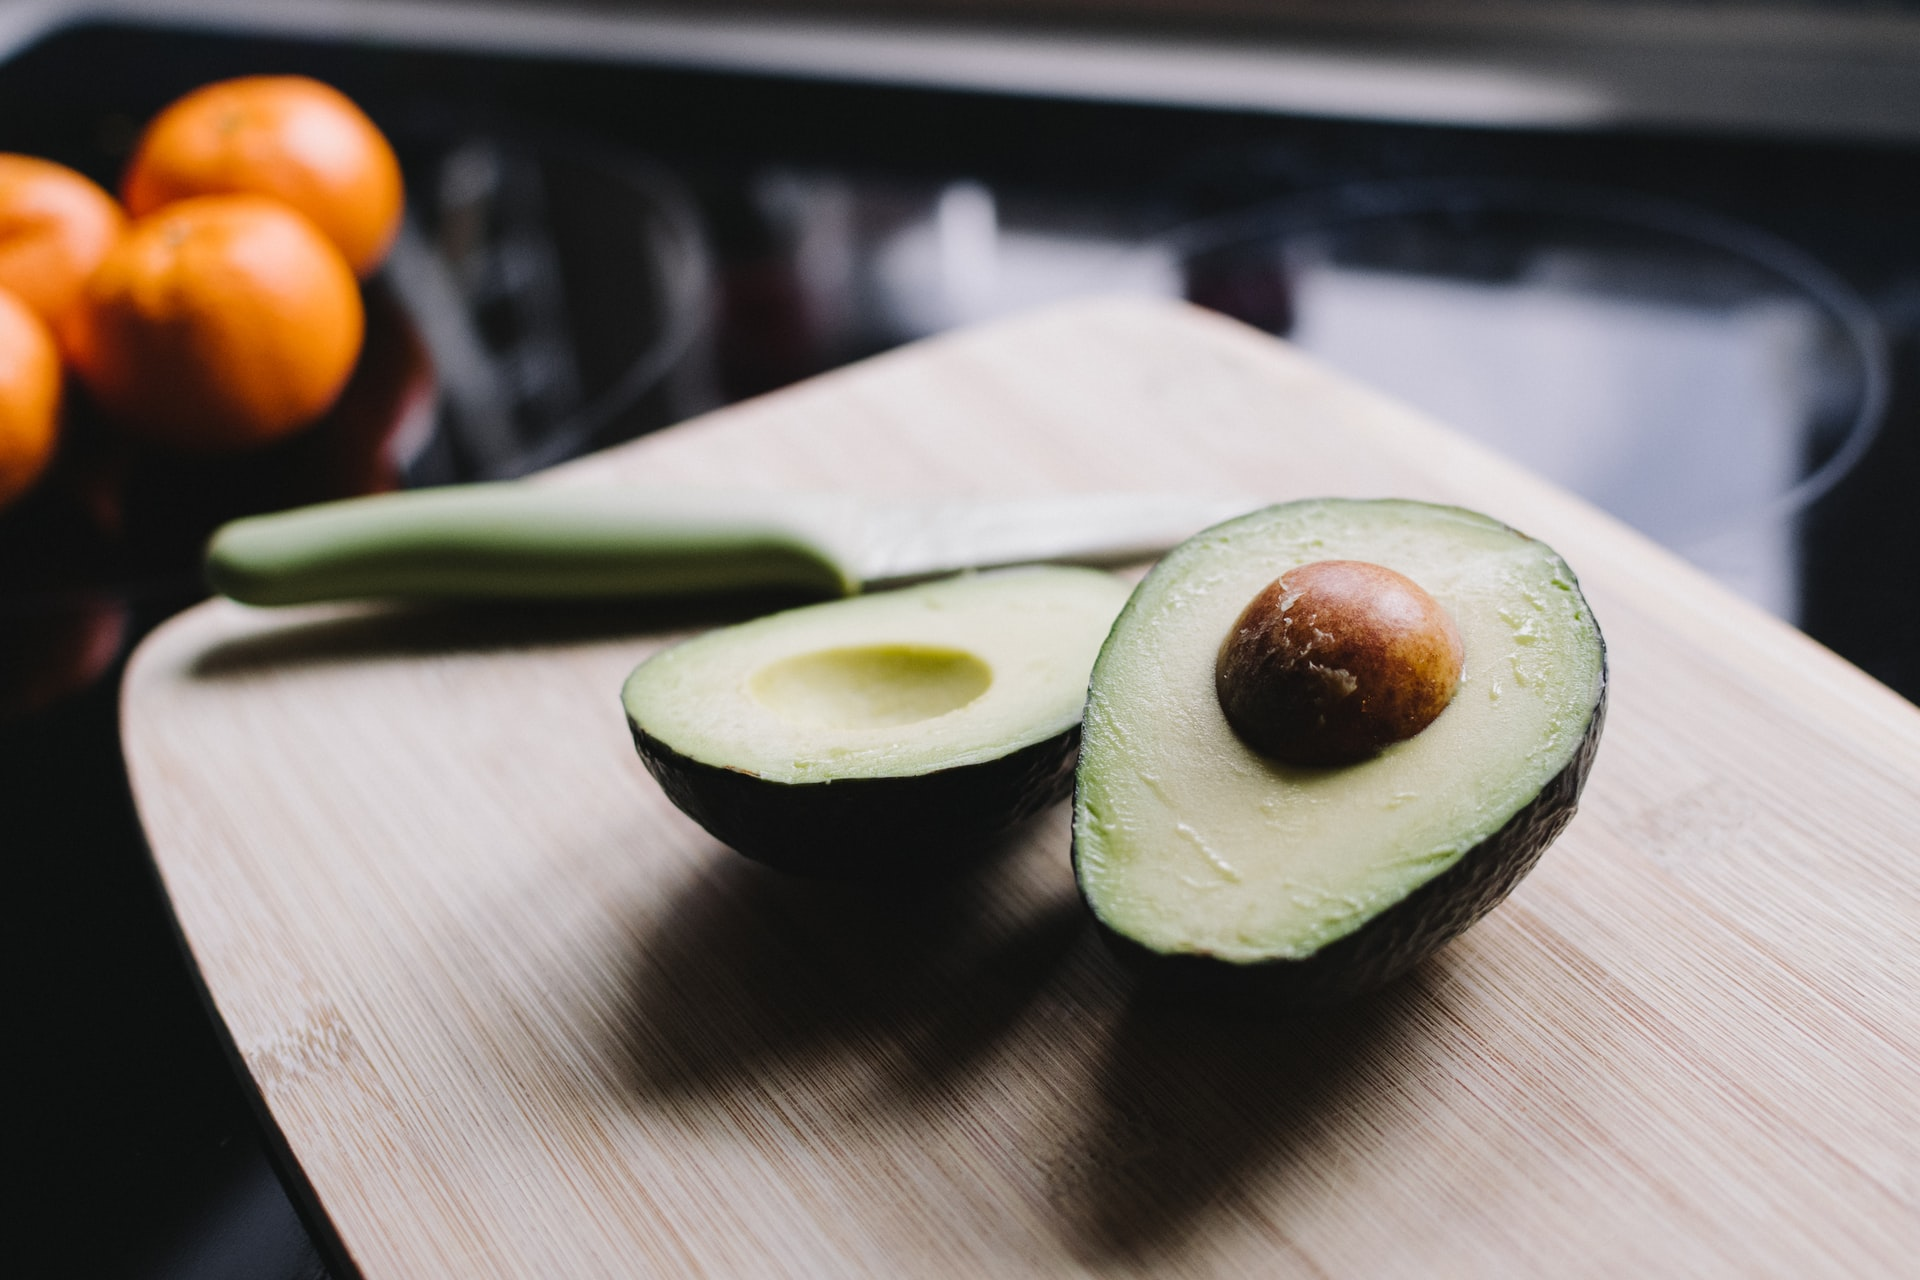 Avocado: Nutritional Information and Health Benefits